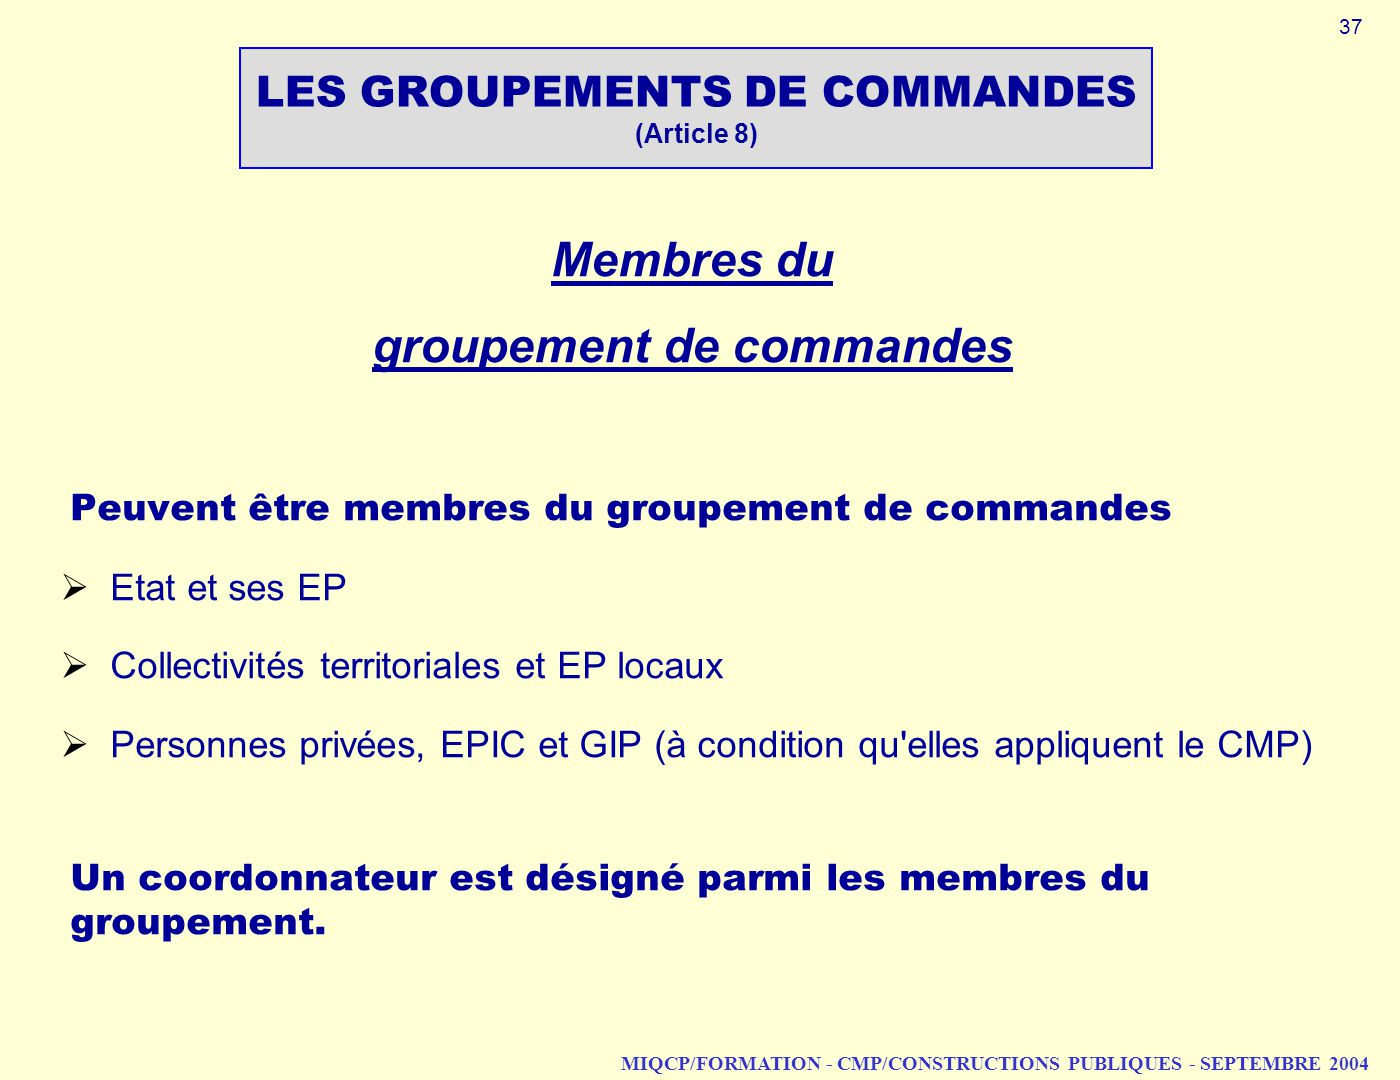 LES GROUPEMENTS DE COMMANDES (Article 8)